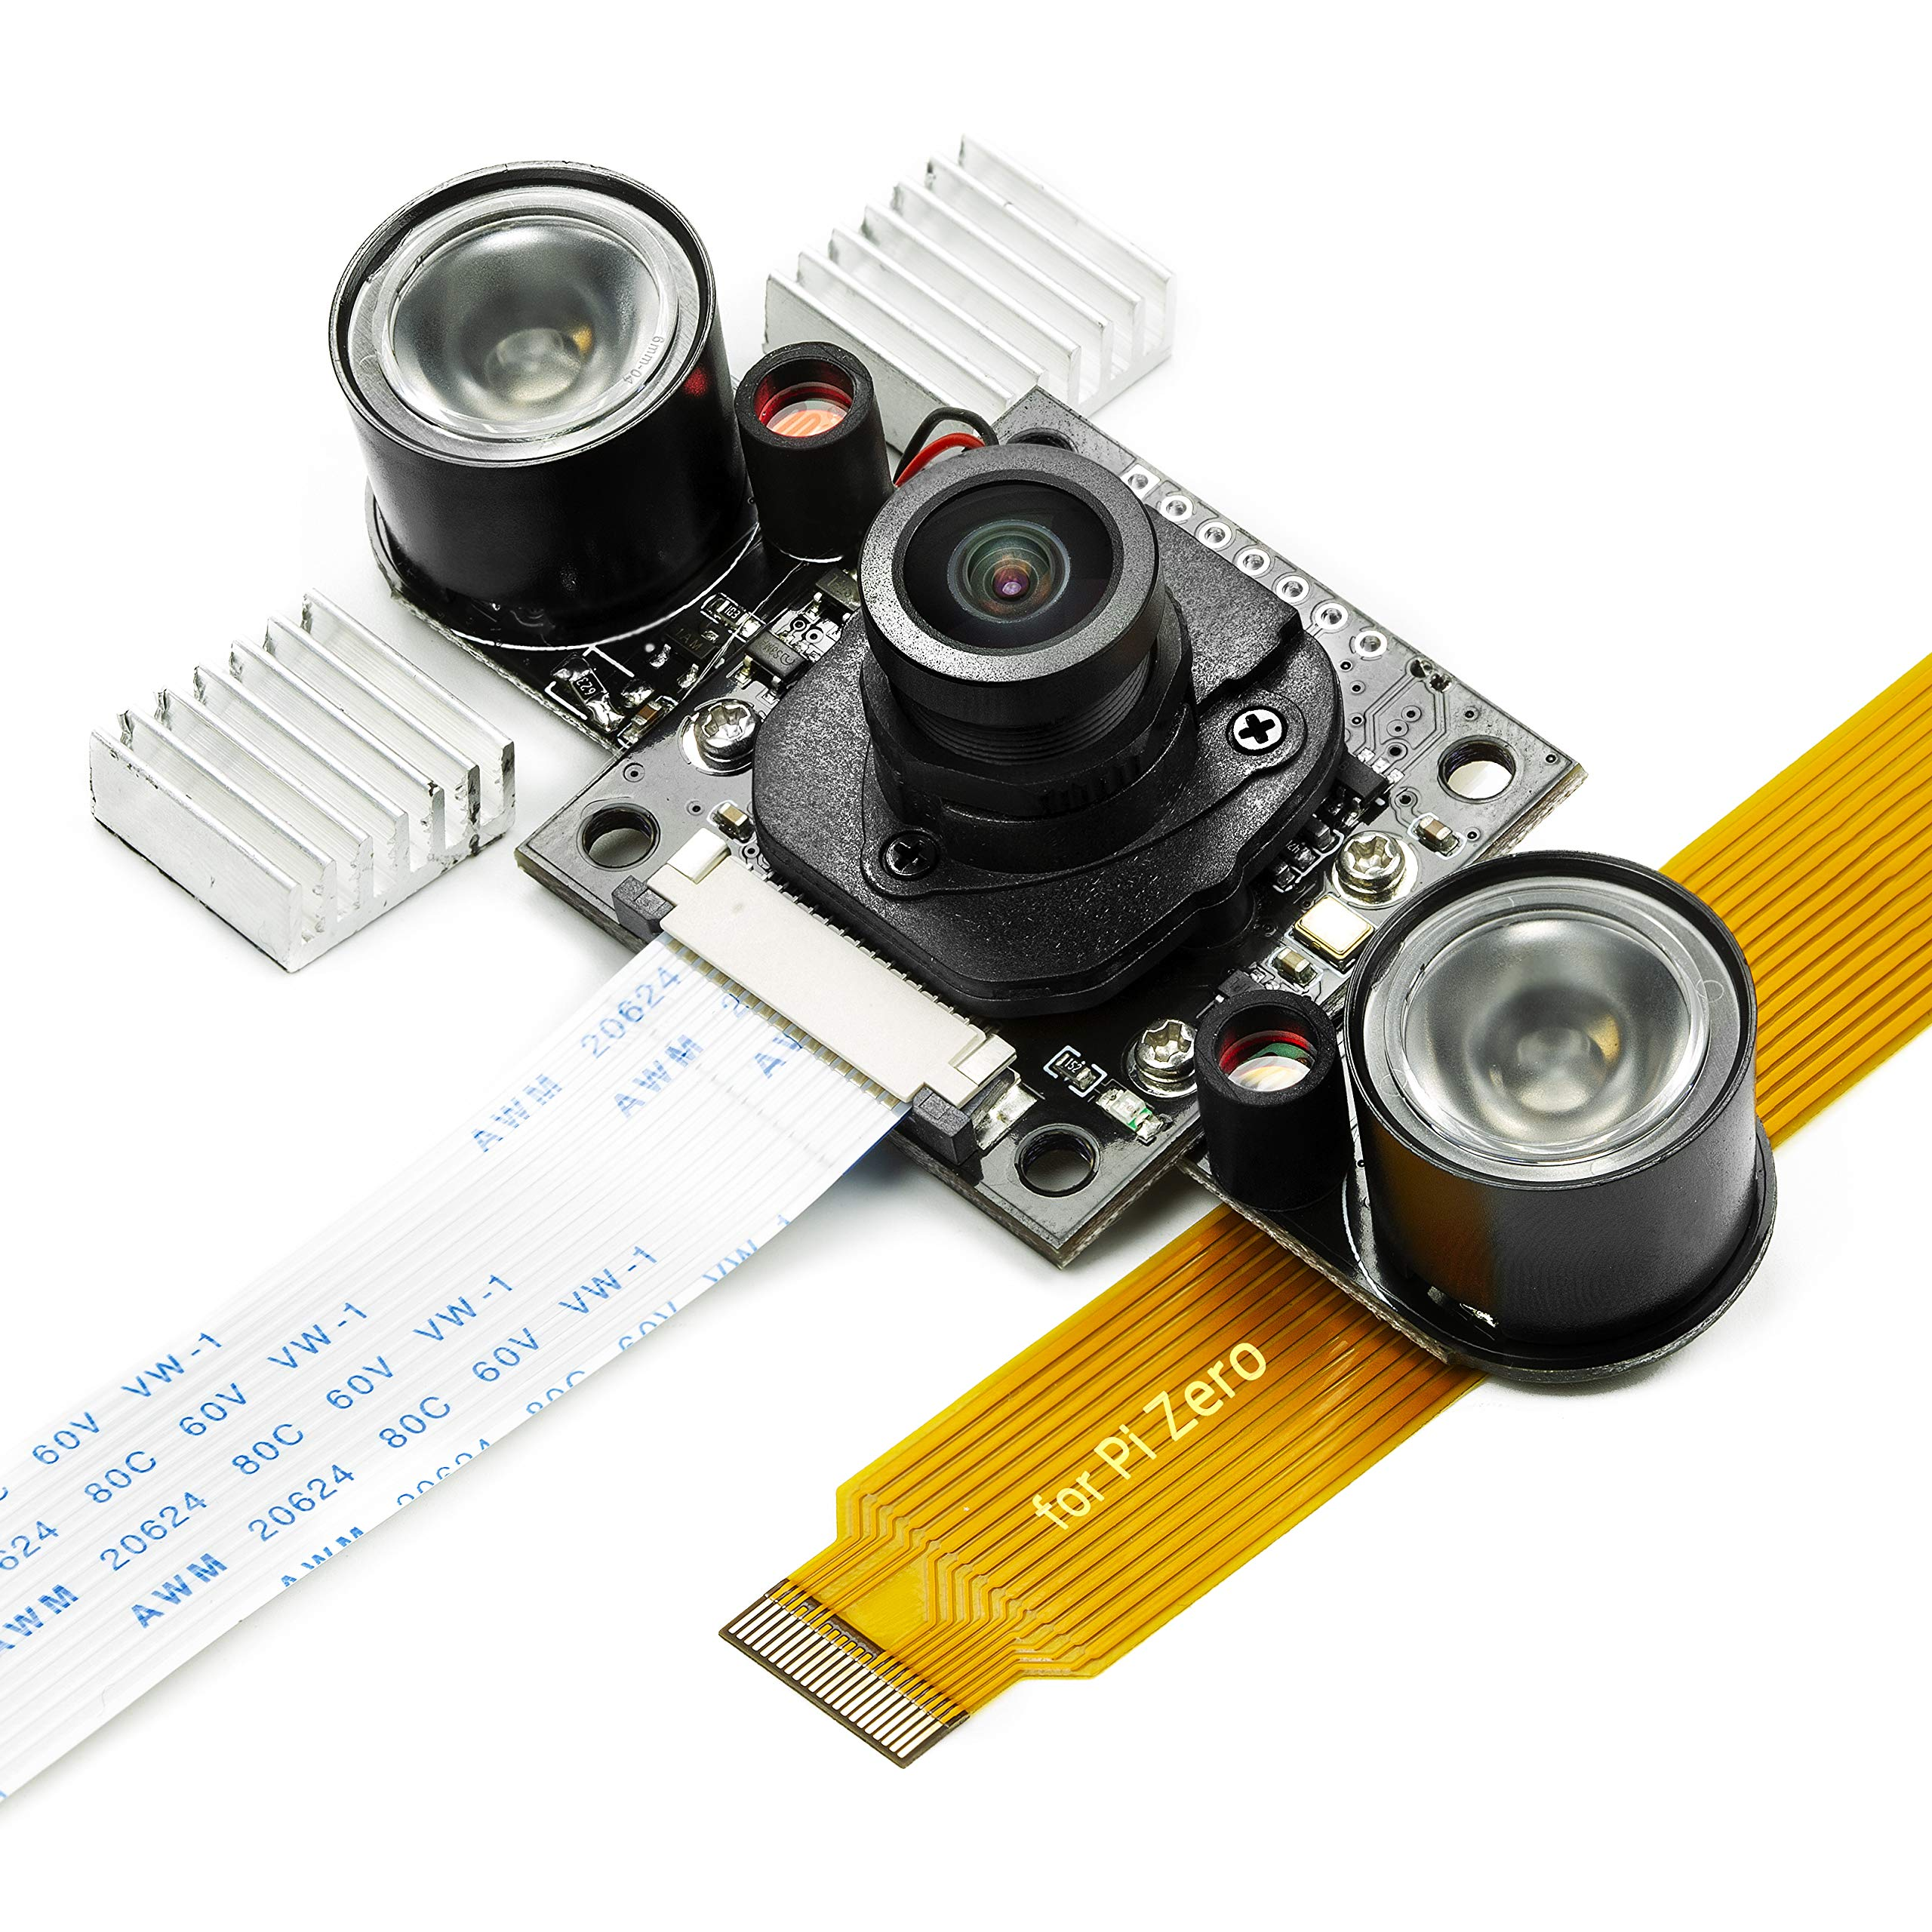 Day-Night Vision for Raspberry Pi Camera, Arducam All-Day Image All-Model Support, IR LED for Low Light and Night Vision, M12 Lens Interchangeable, IR Filter Switch Programmable, OV5647 5MP 1080P